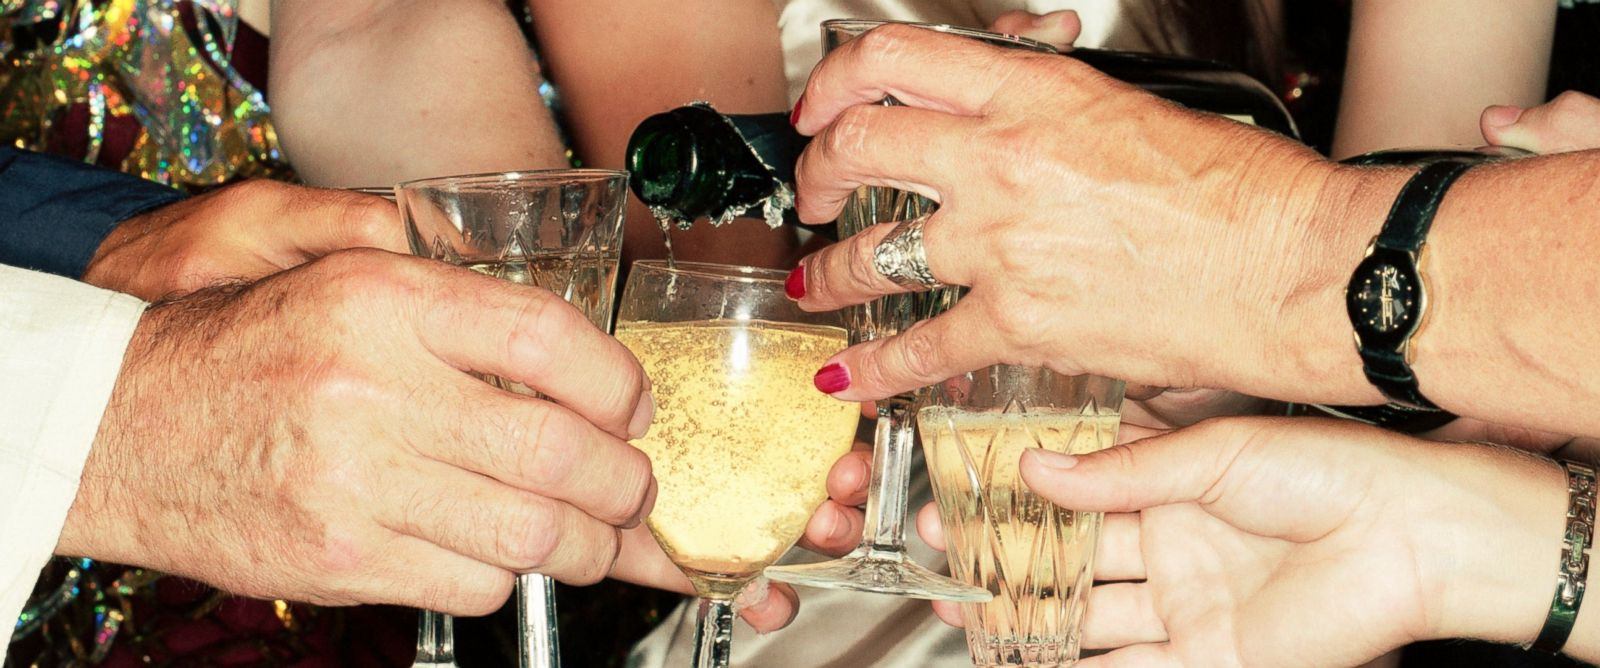 PHOTO: Celebrating New Years with a champagne toast.